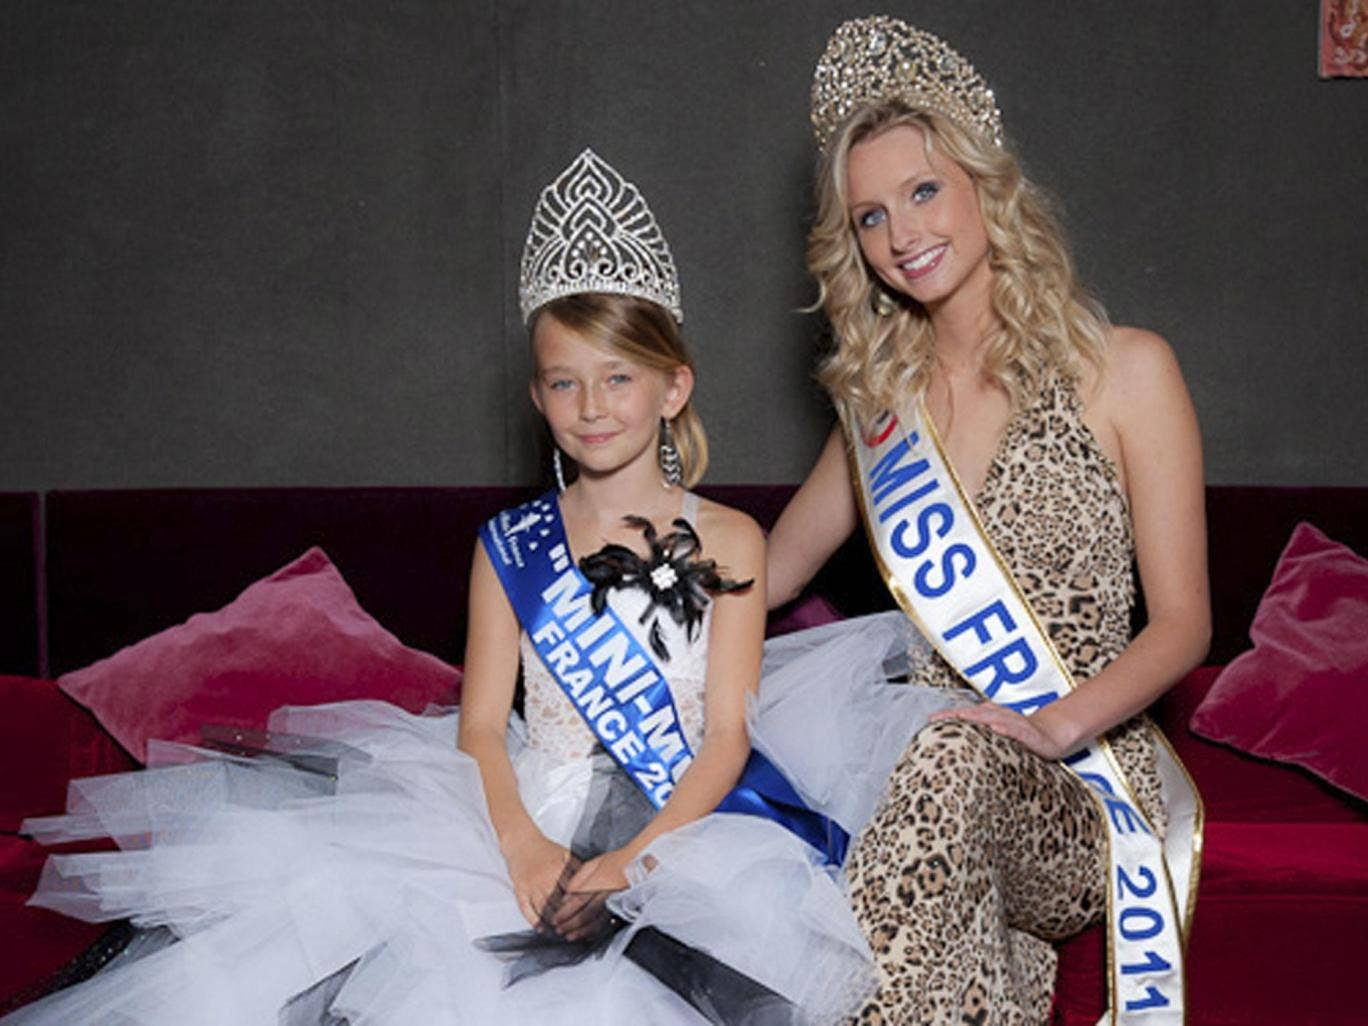 Oceane Scharre, 10, elected Mini Miss France 2011 (left) and Miss France 2011 Mathilde Florin. France's Senate has voted to ban beauty pageants for children under 16, in an effort to protect children, especially girls from being sexualized too early.